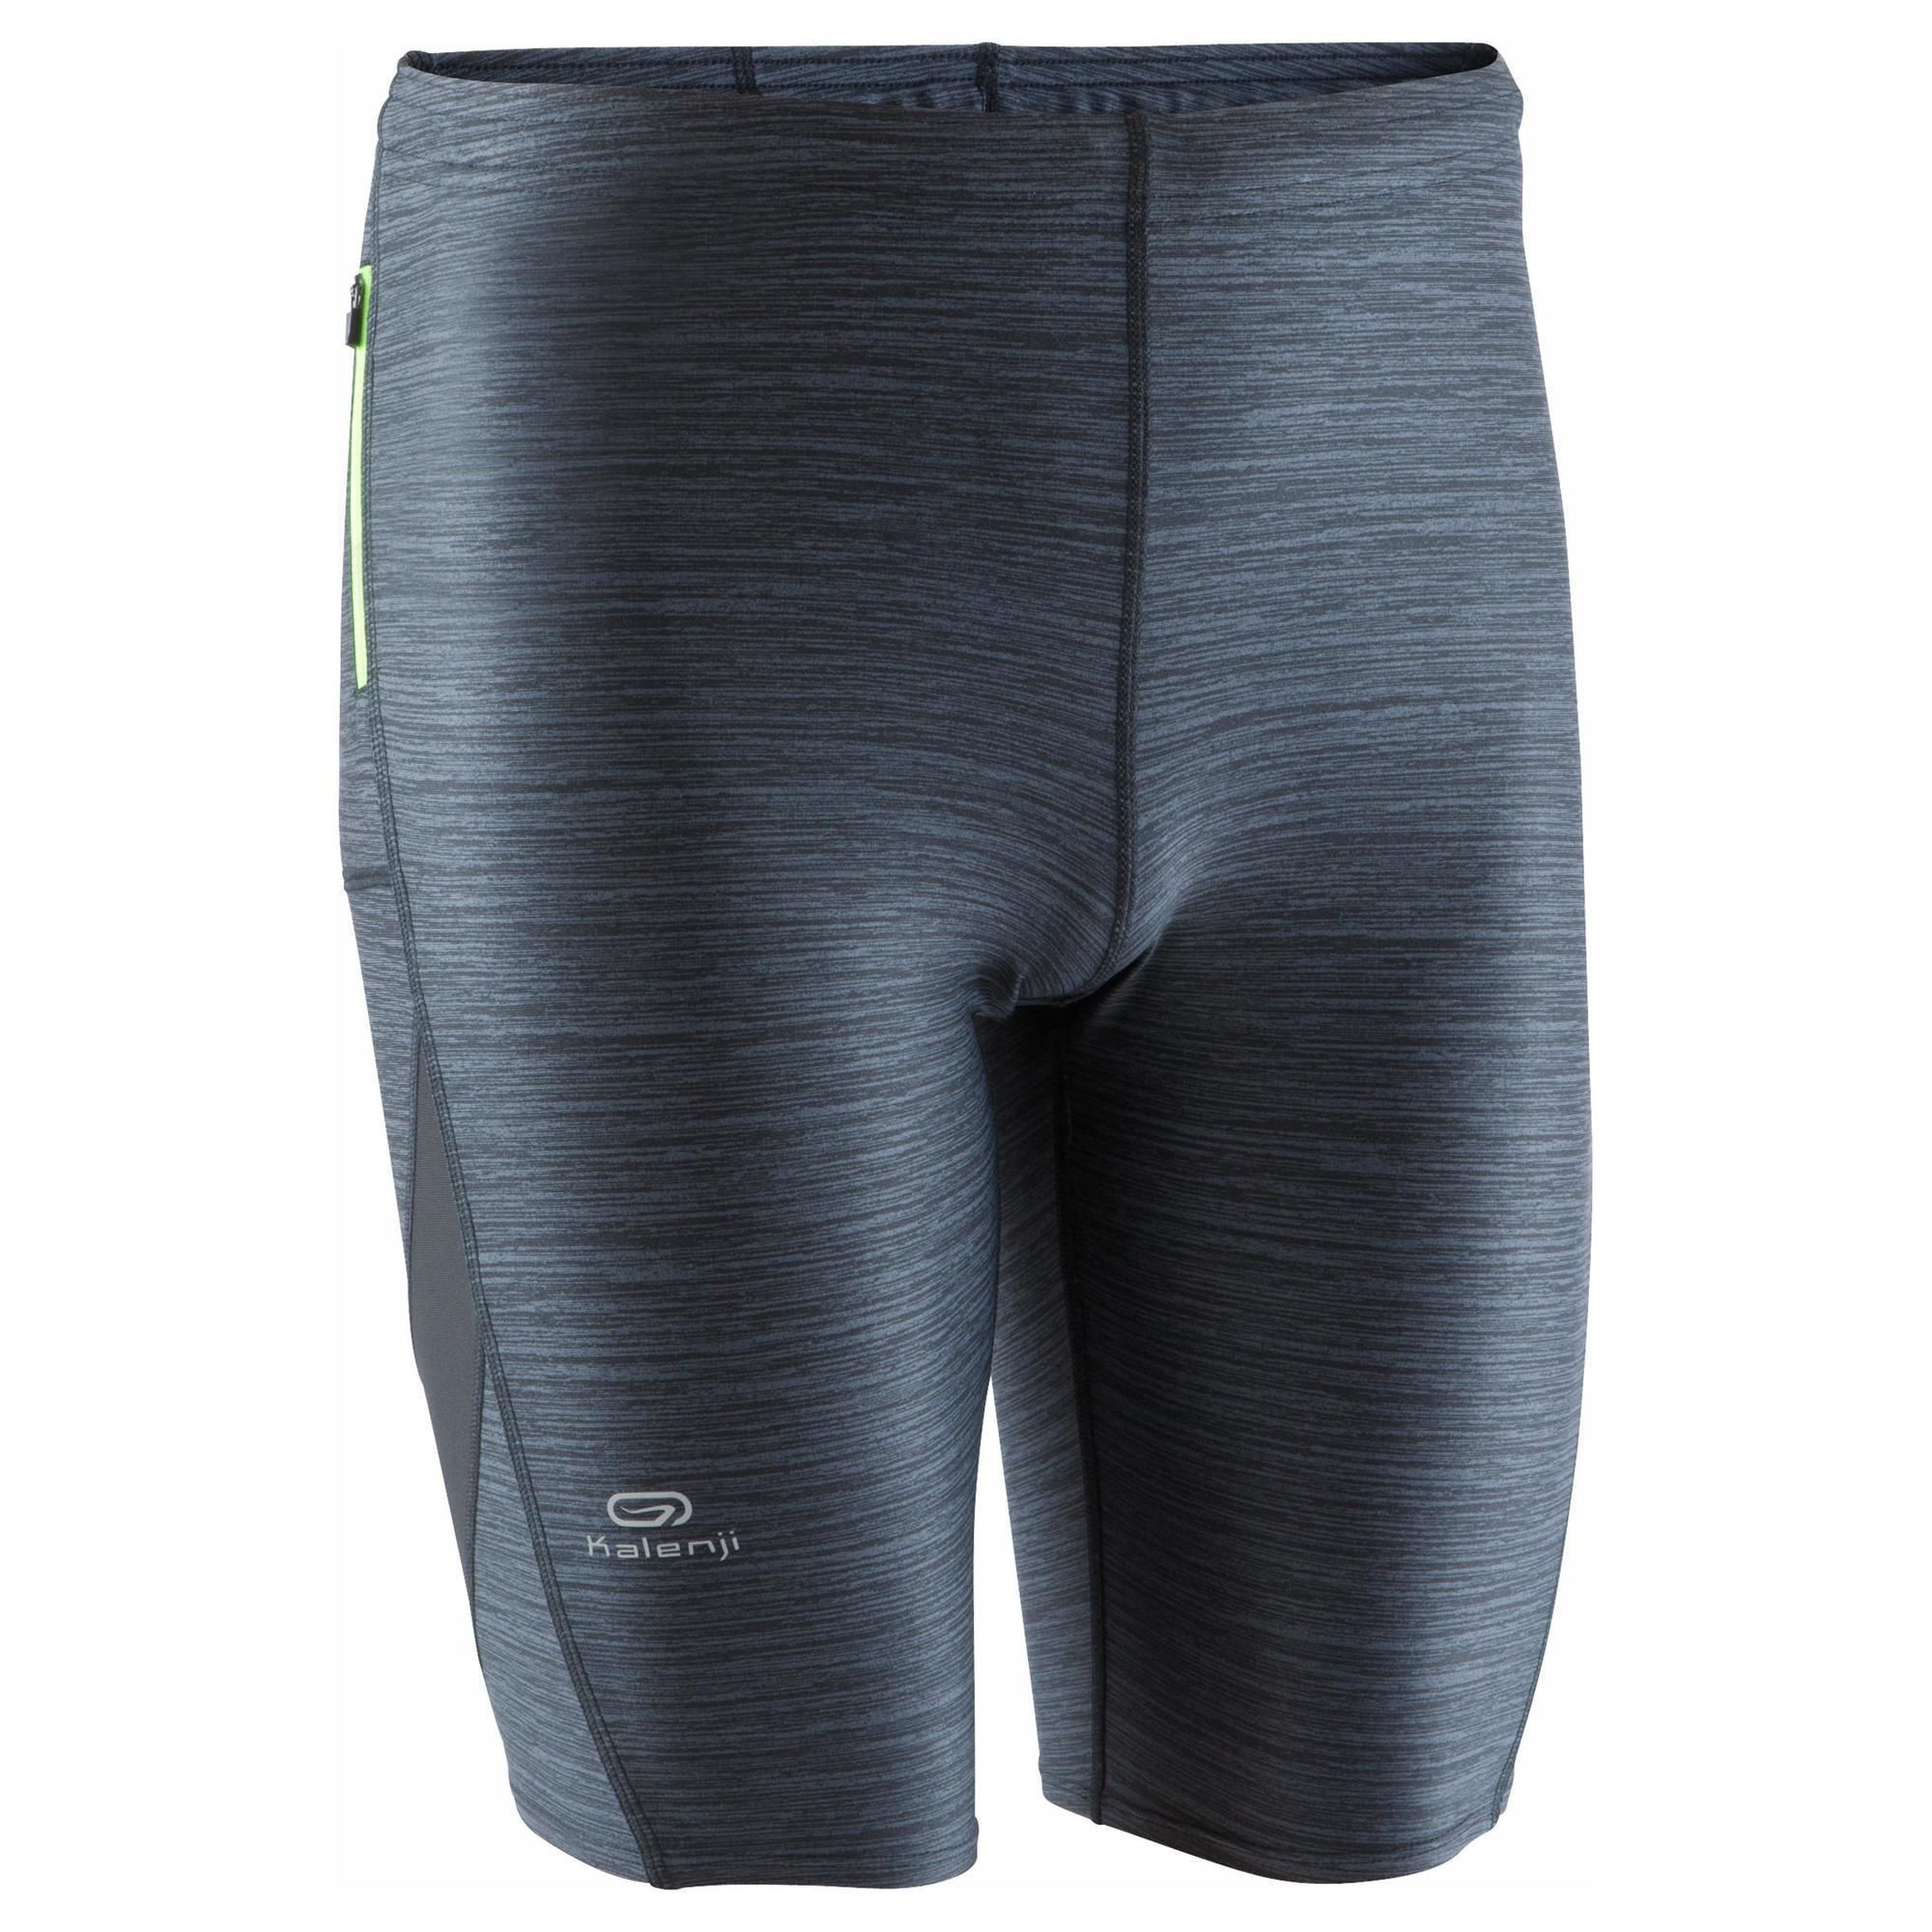 Shorts for Heren | The Athletes Foot